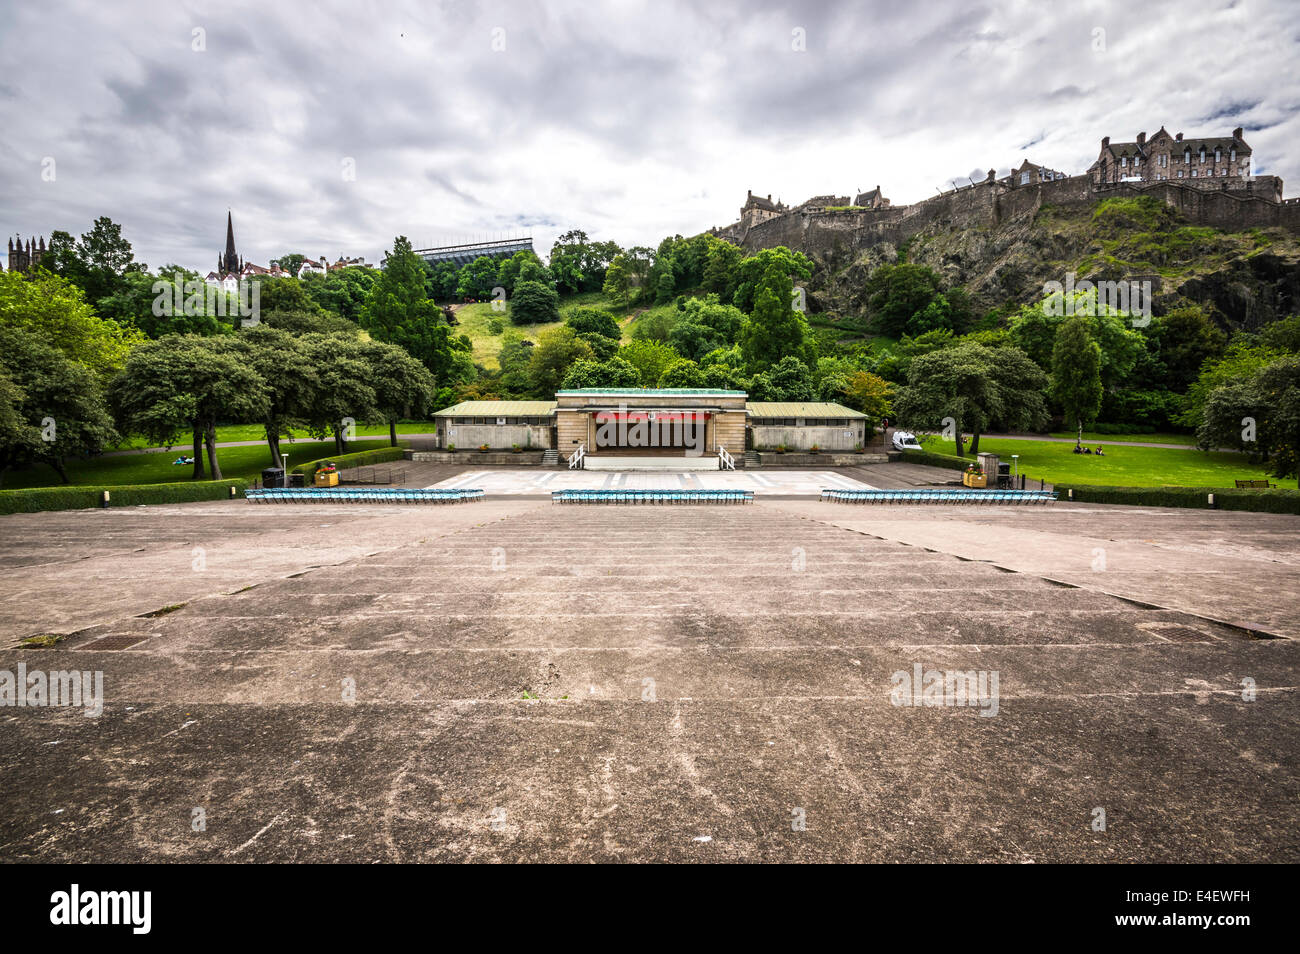 Ross bandstand Princes street gardens Edinburgh on a cloudy summers day - Stock Image